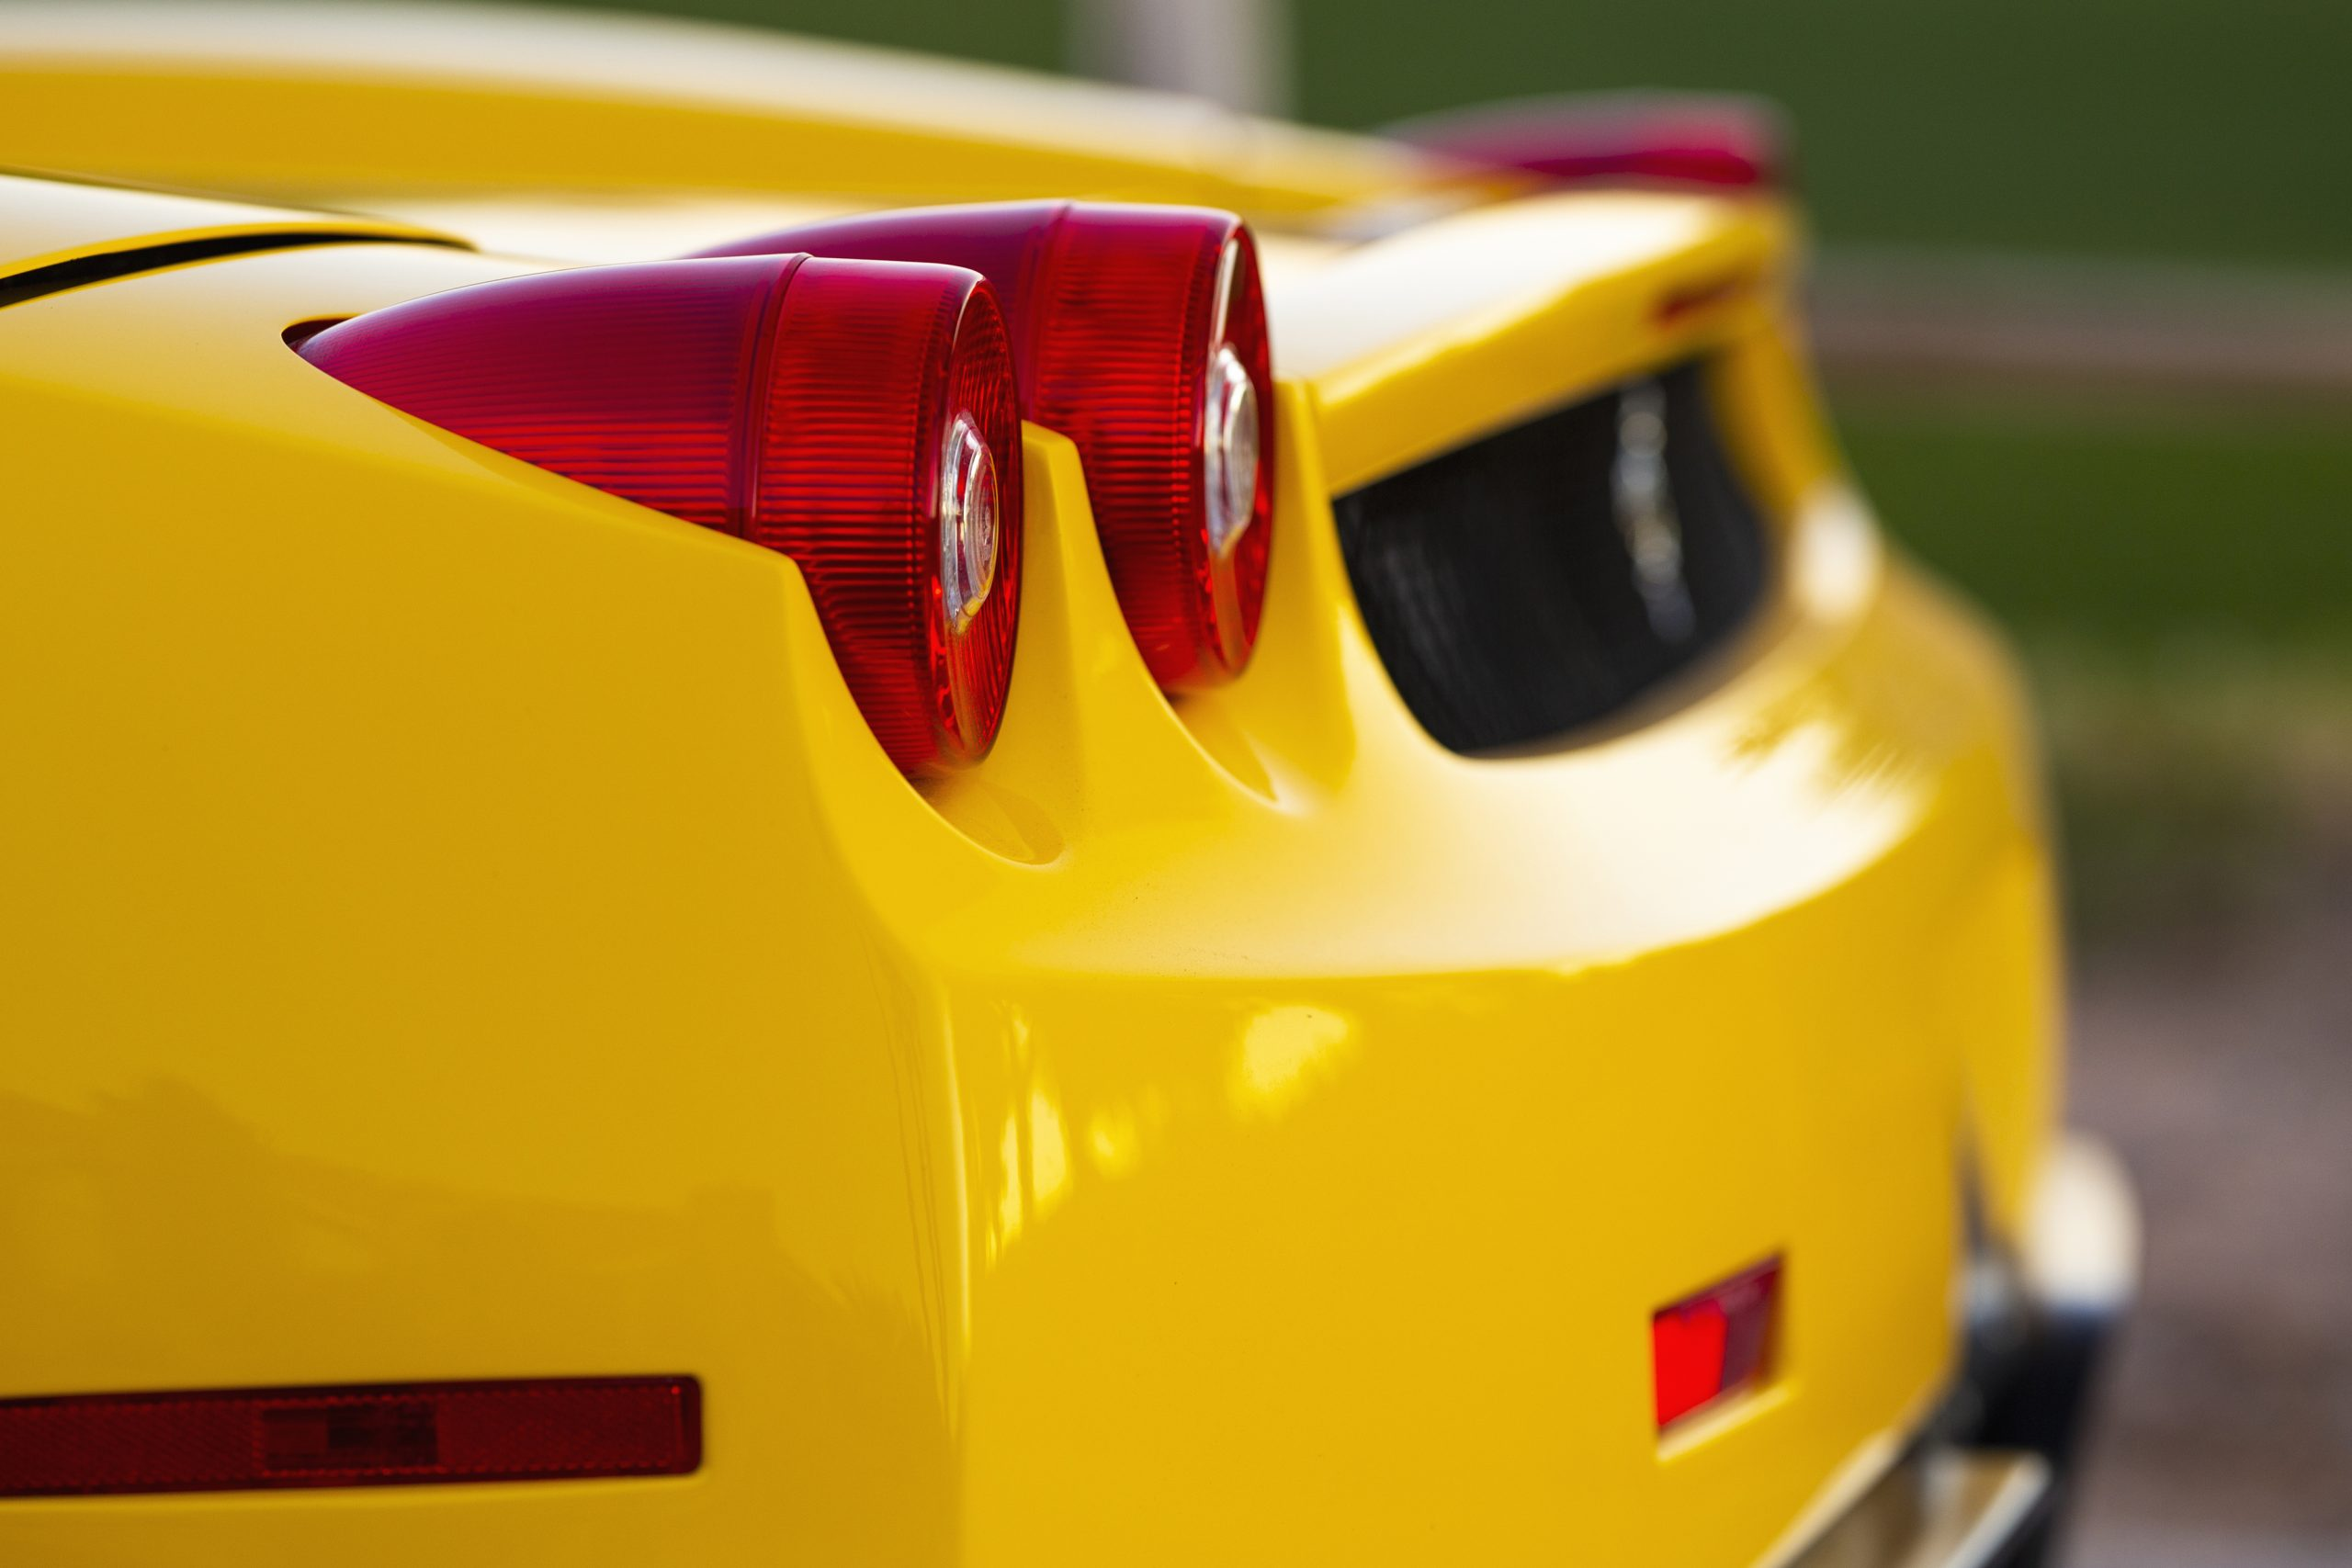 Ferrari Enzo rear taillight detail